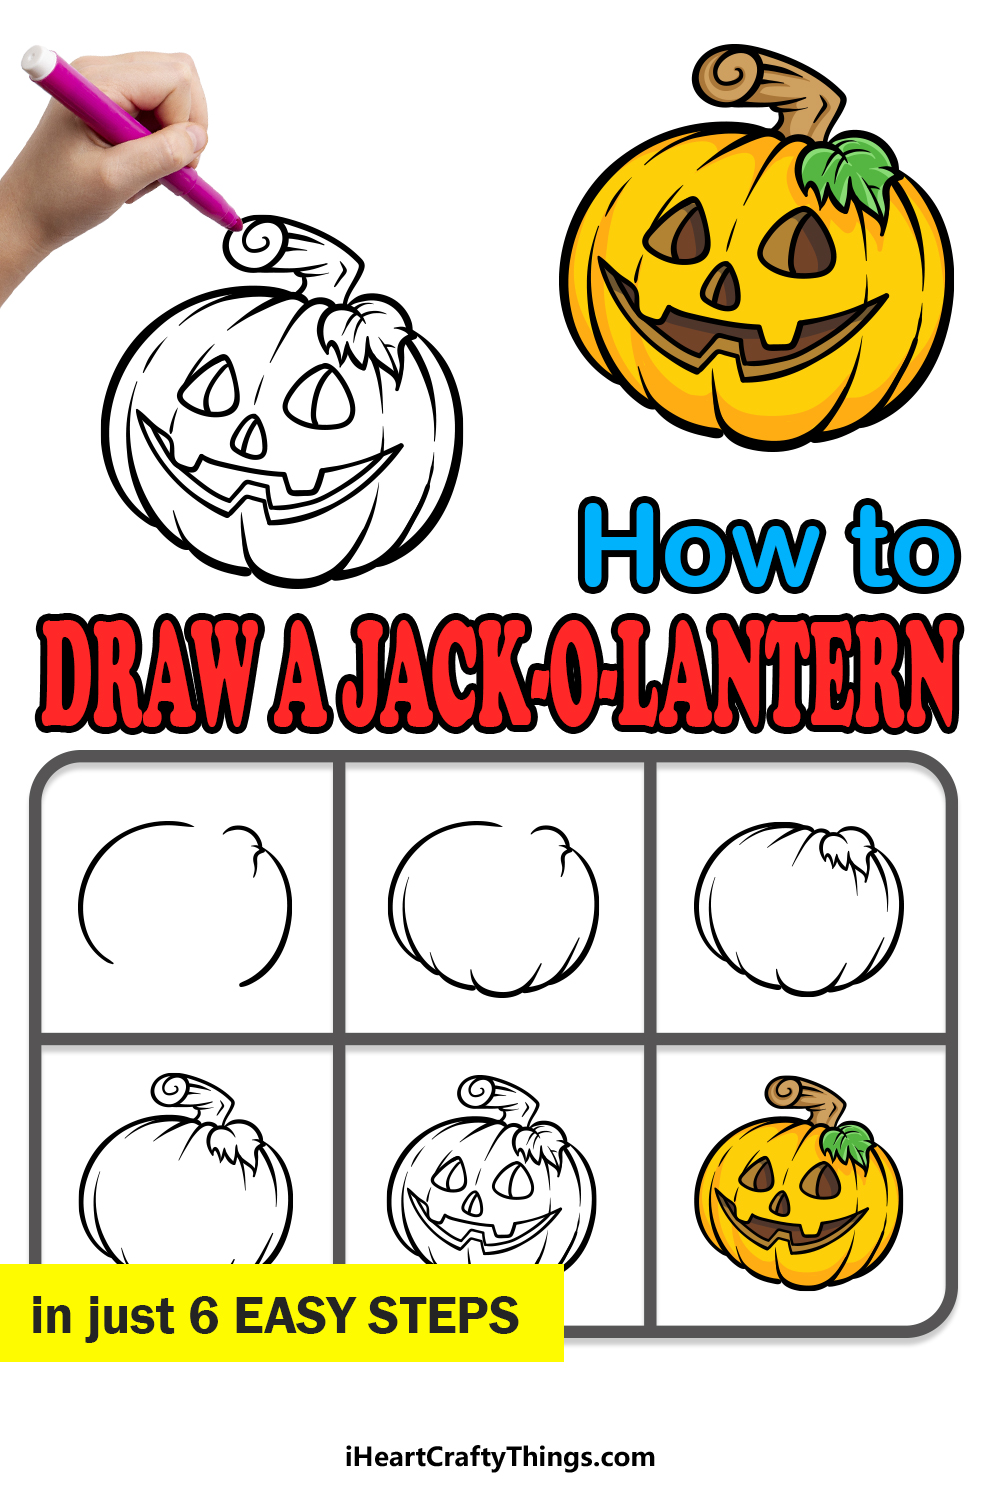 how to draw a jack-o-lantern in 6 easy steps